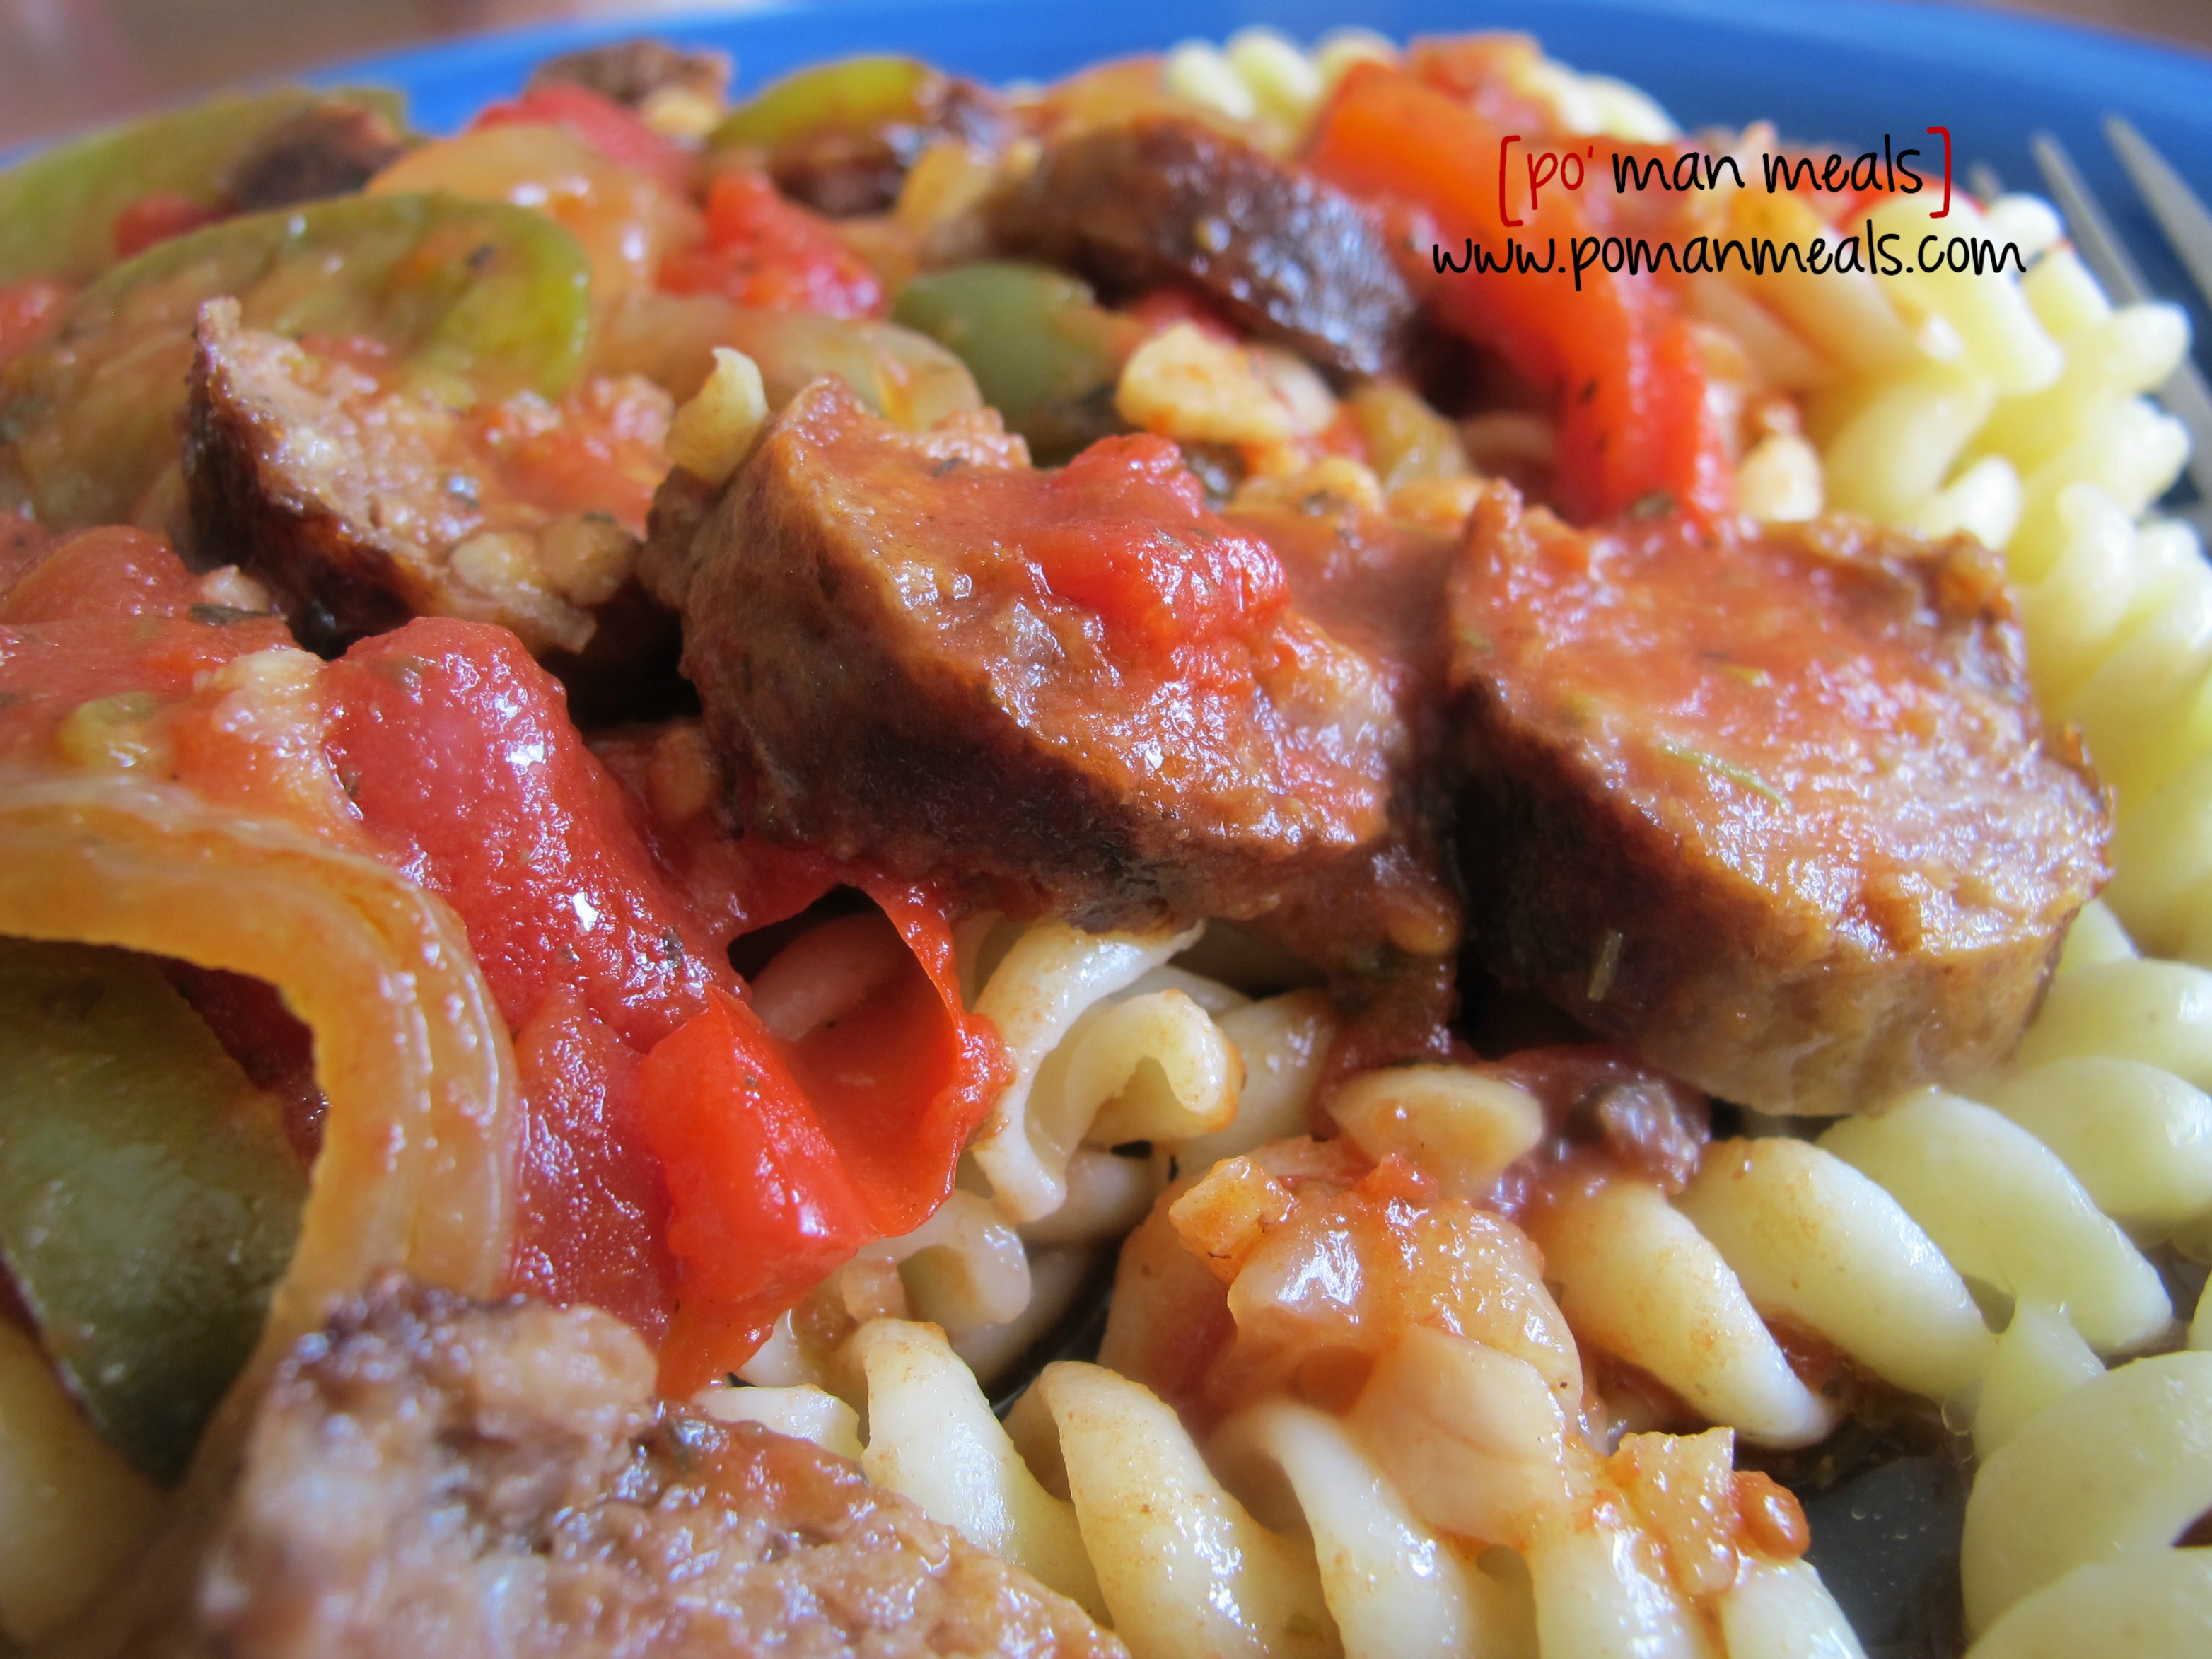 po' man meals - slow cooker italian sausage with peppers and onions